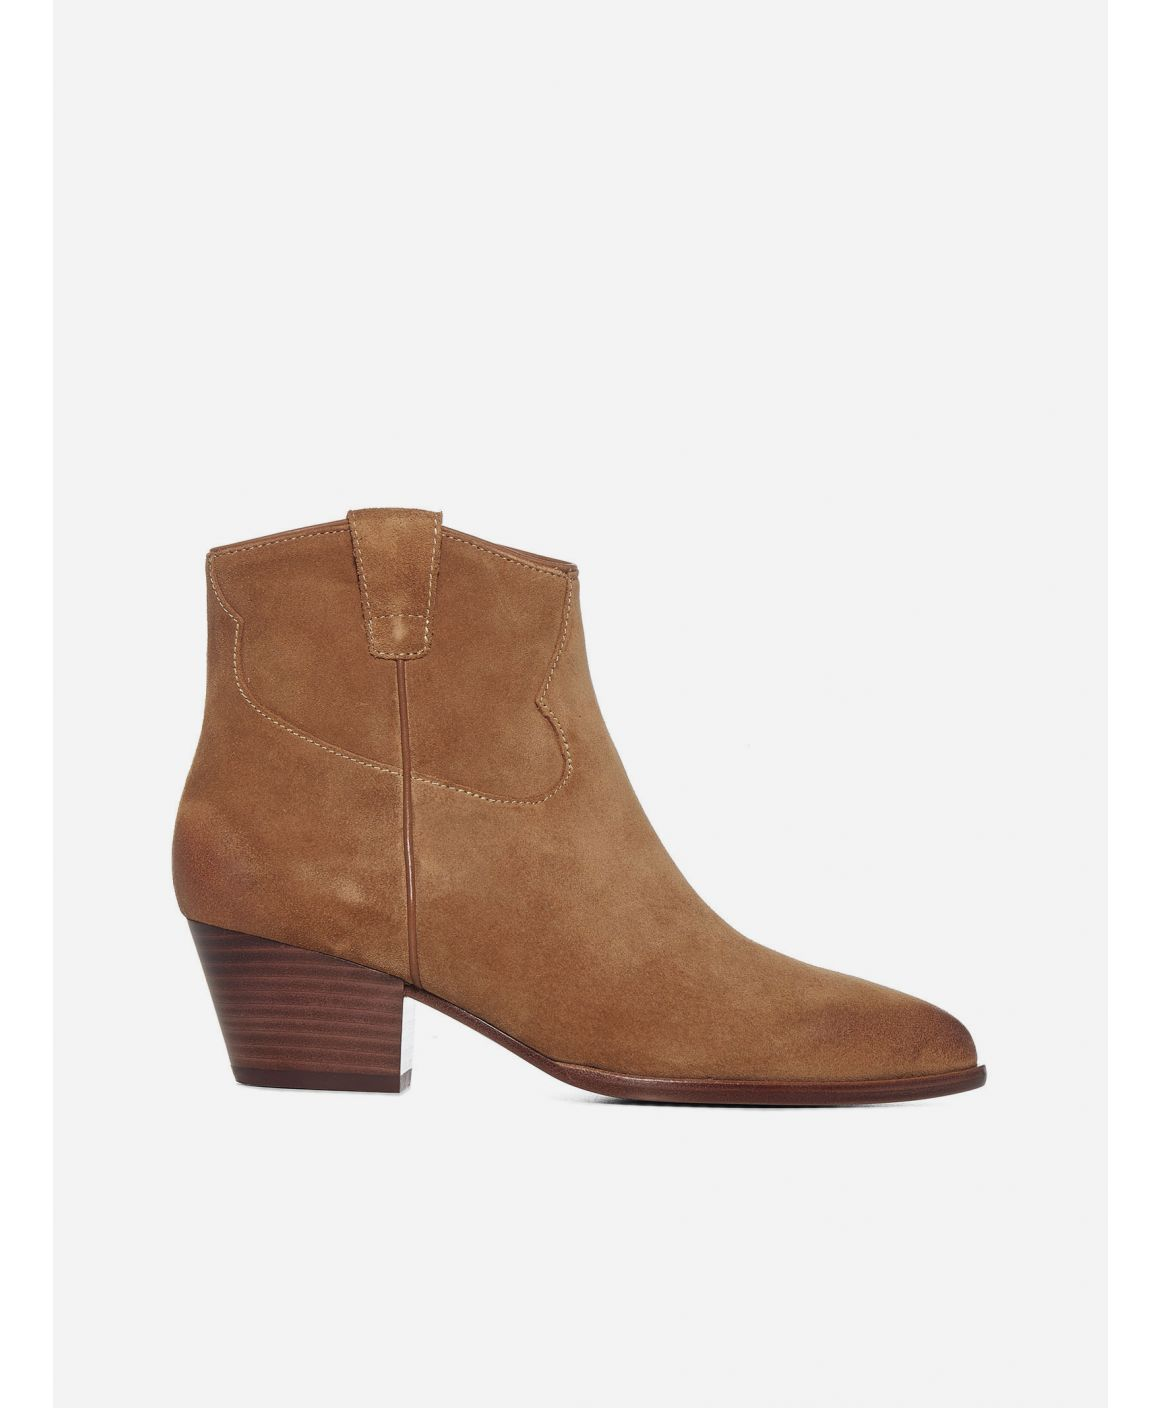 Houston suede ankle boots